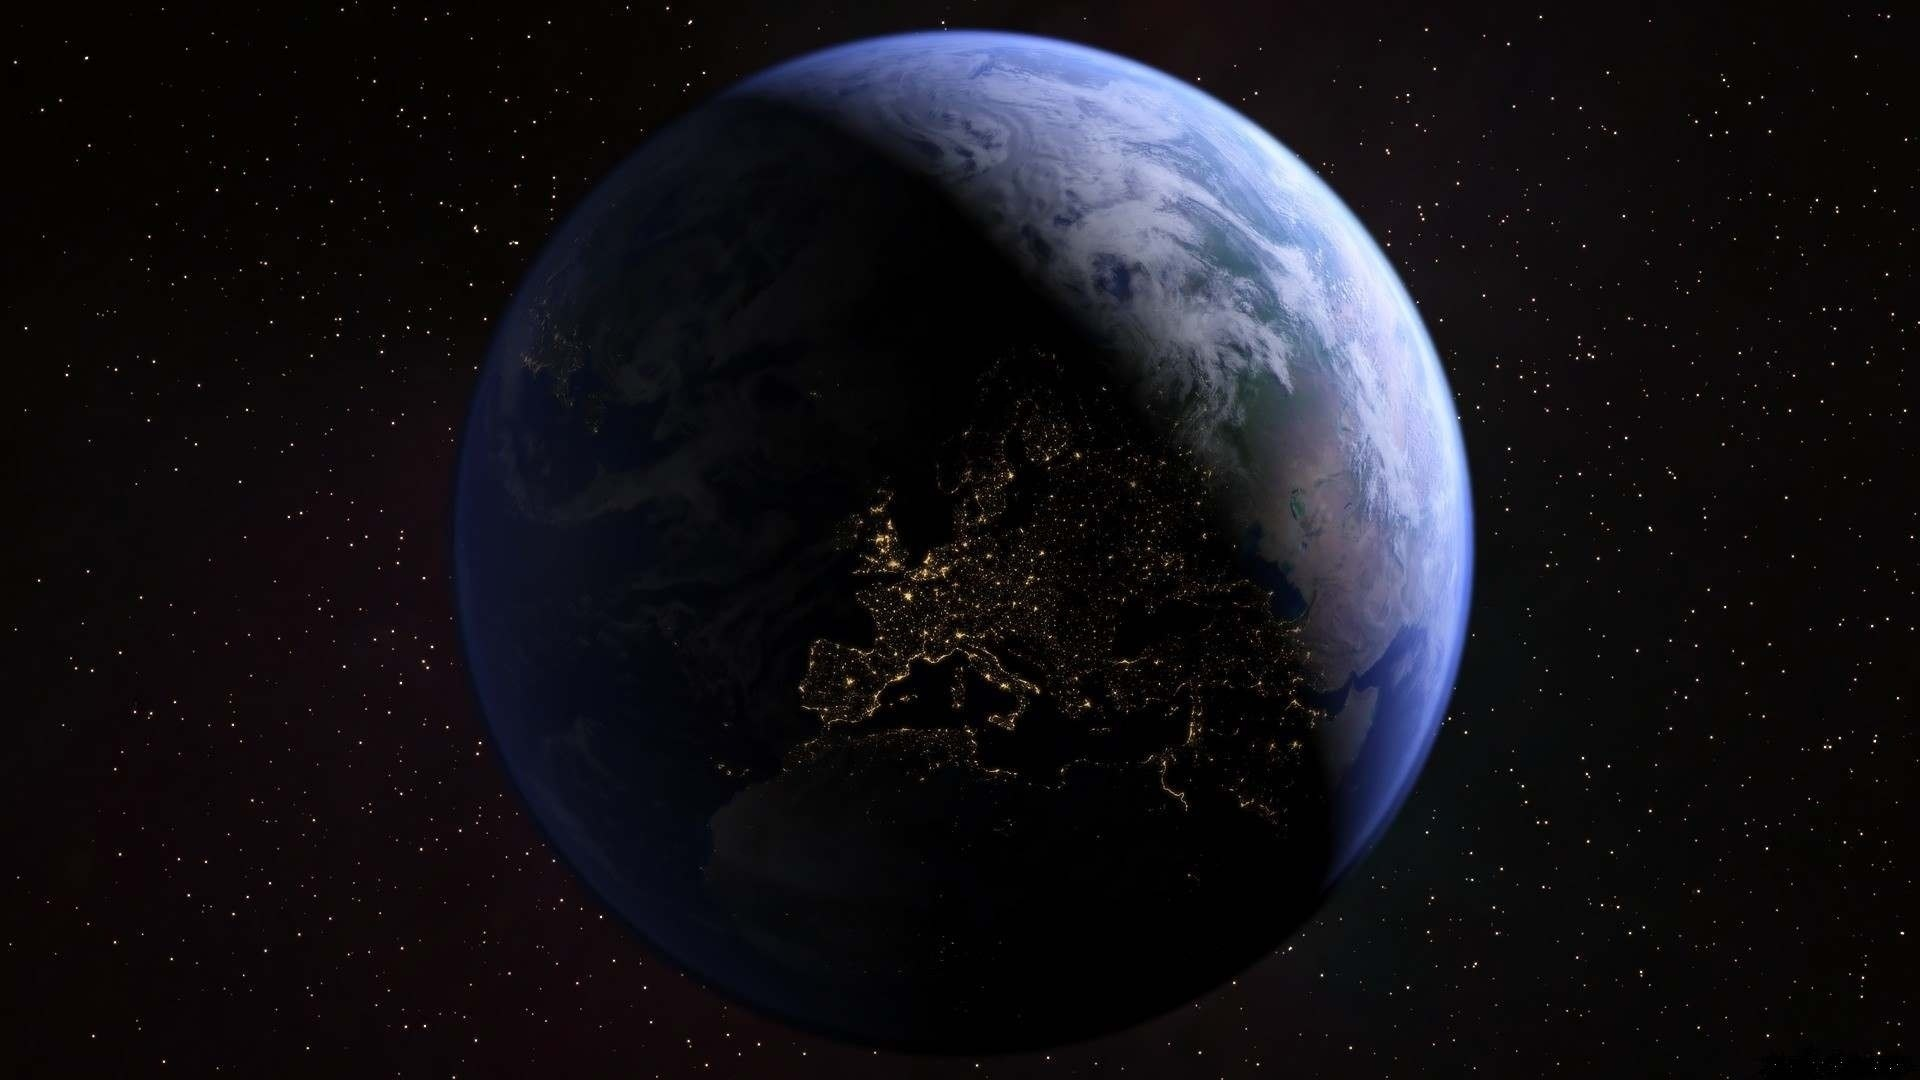 Earth from space wallpaper 1920x1080 74 images - Space wallpaper 1920x1080 ...